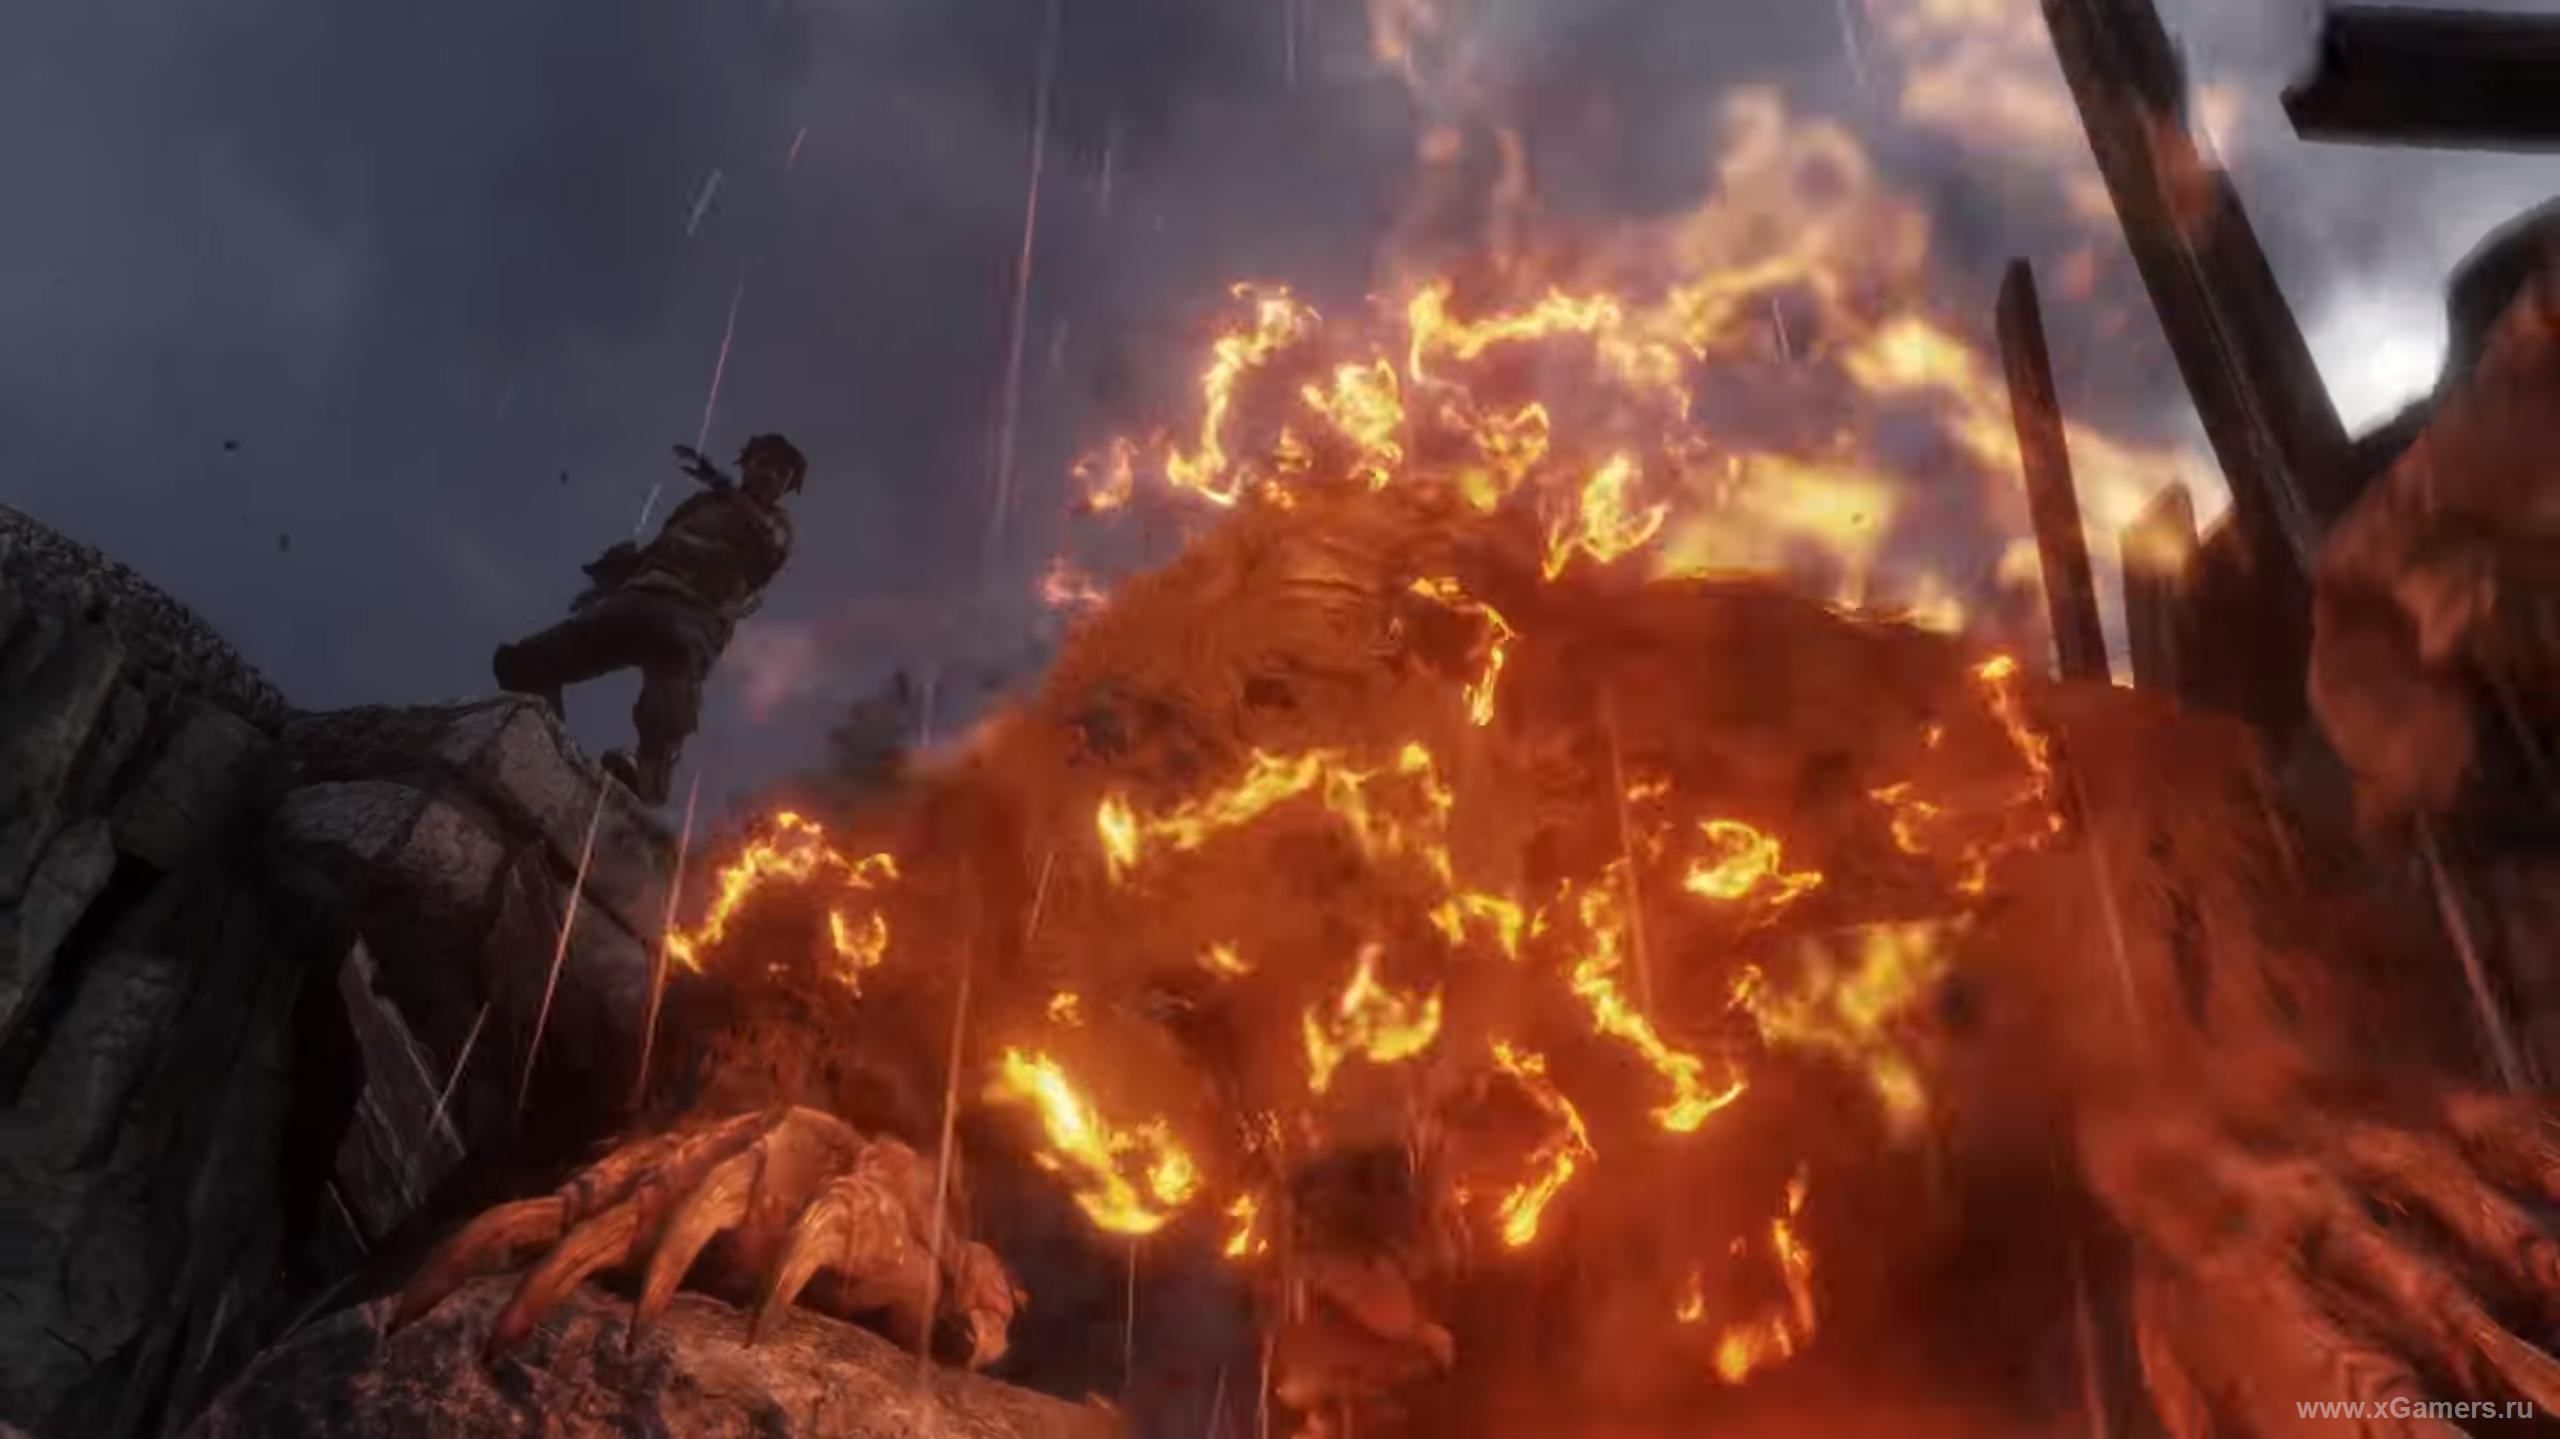 Meeting with a flaming monster in the game Metro Exodus